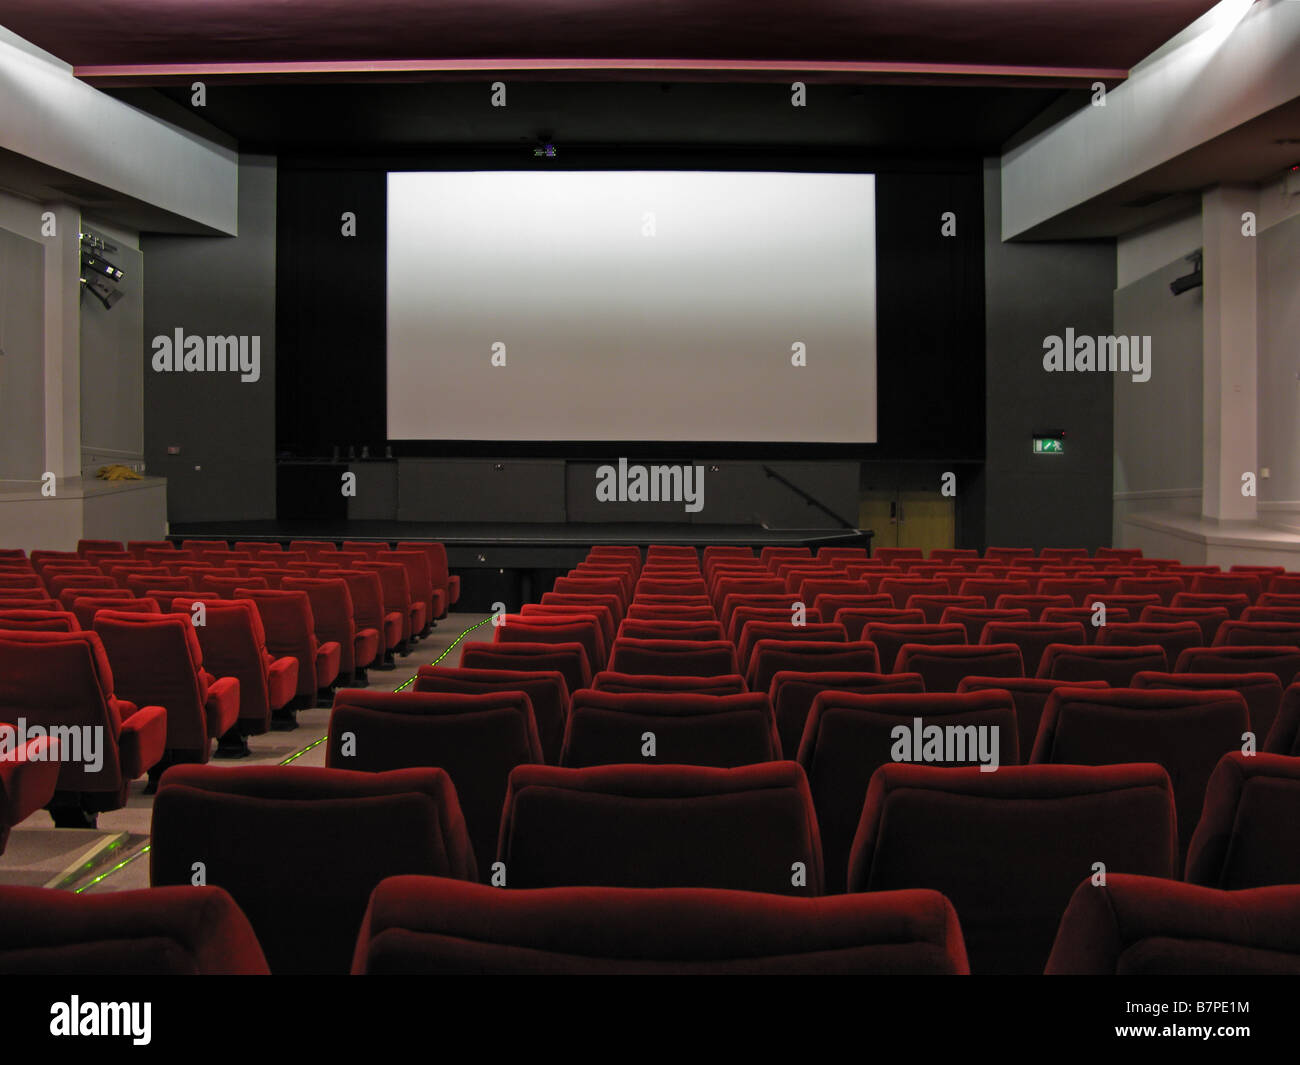 Cinema interior - Stock Image